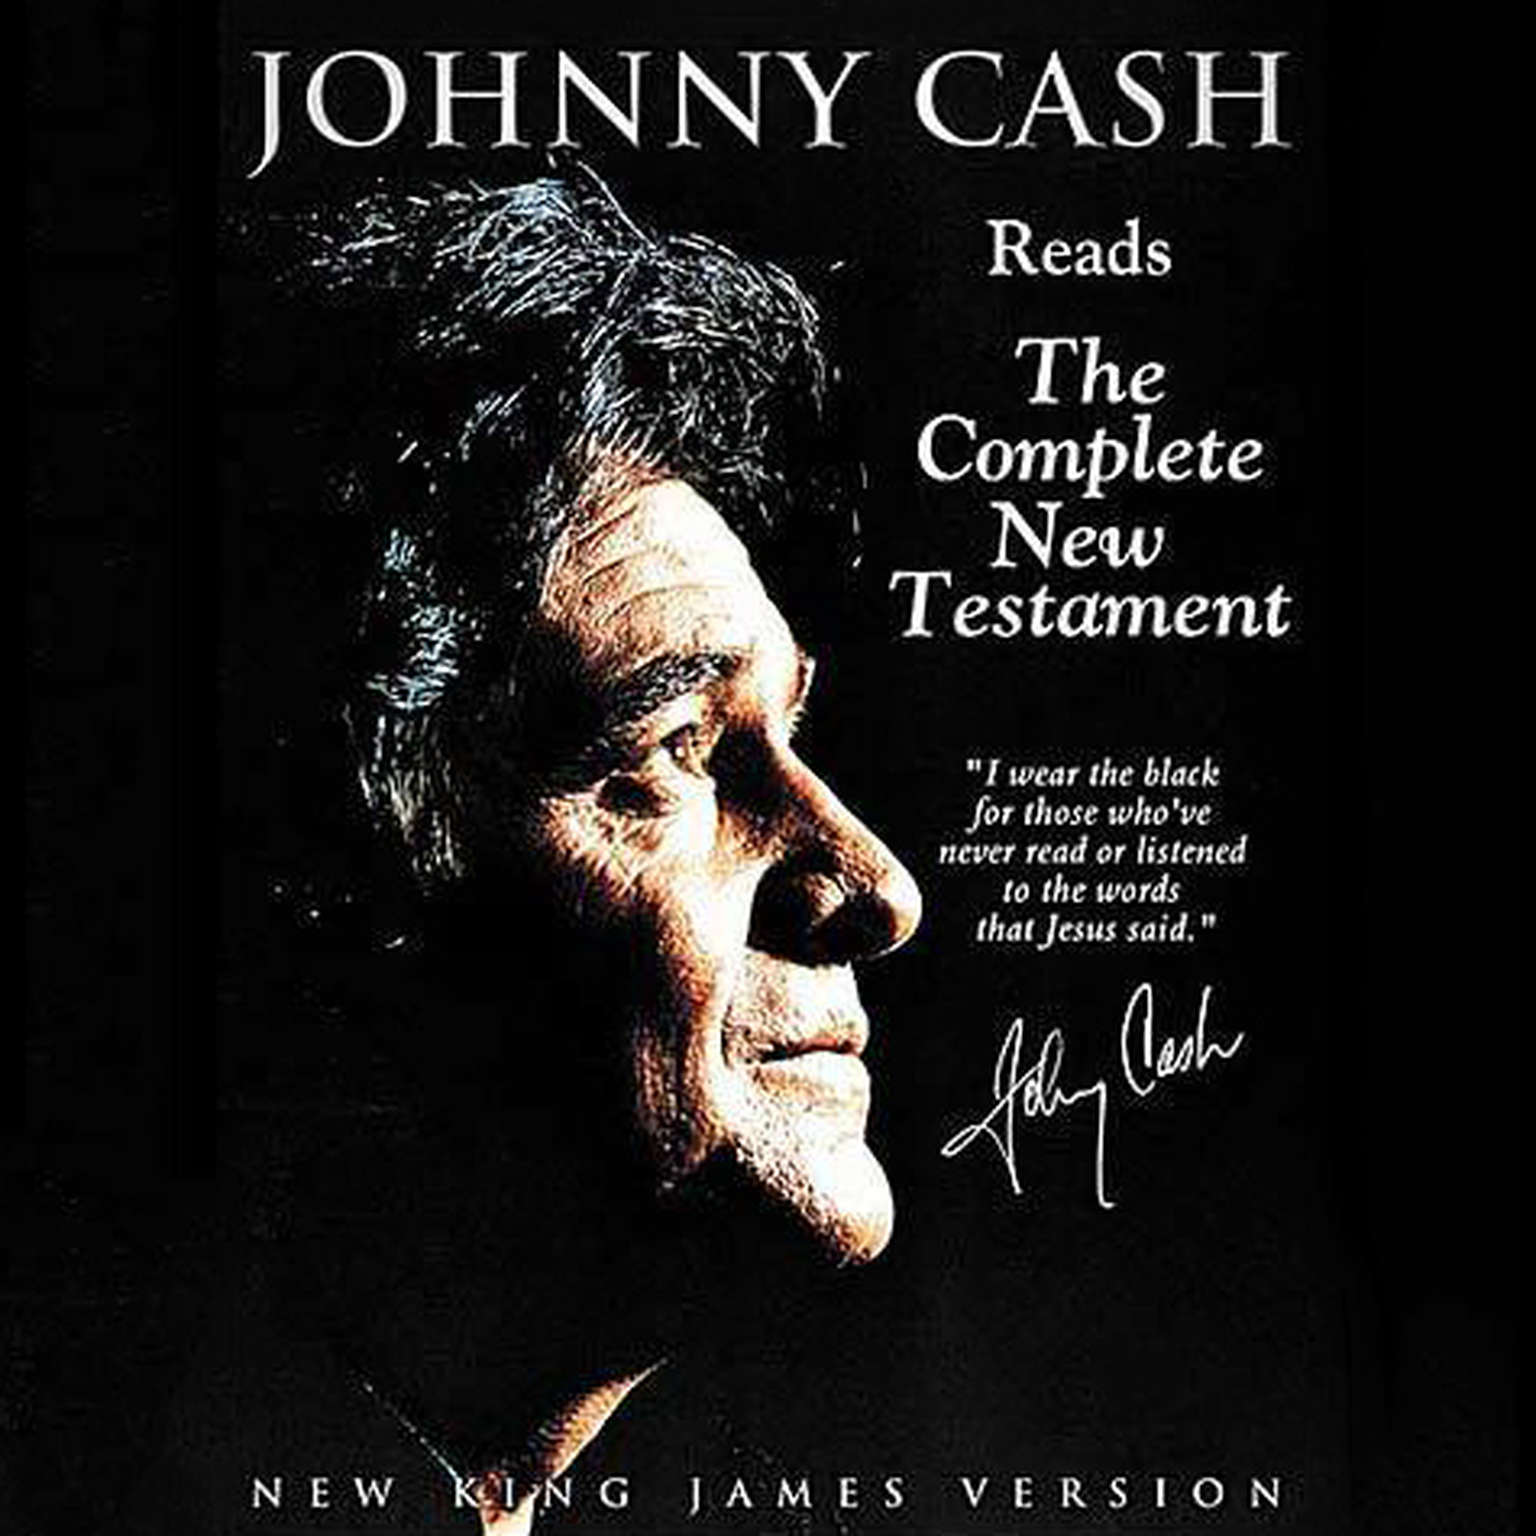 Printable Johnny Cash Reading the New Testament Audio Bible - New King James Version, NKJV: New Testament: NKJV Audio Bible Audiobook Cover Art